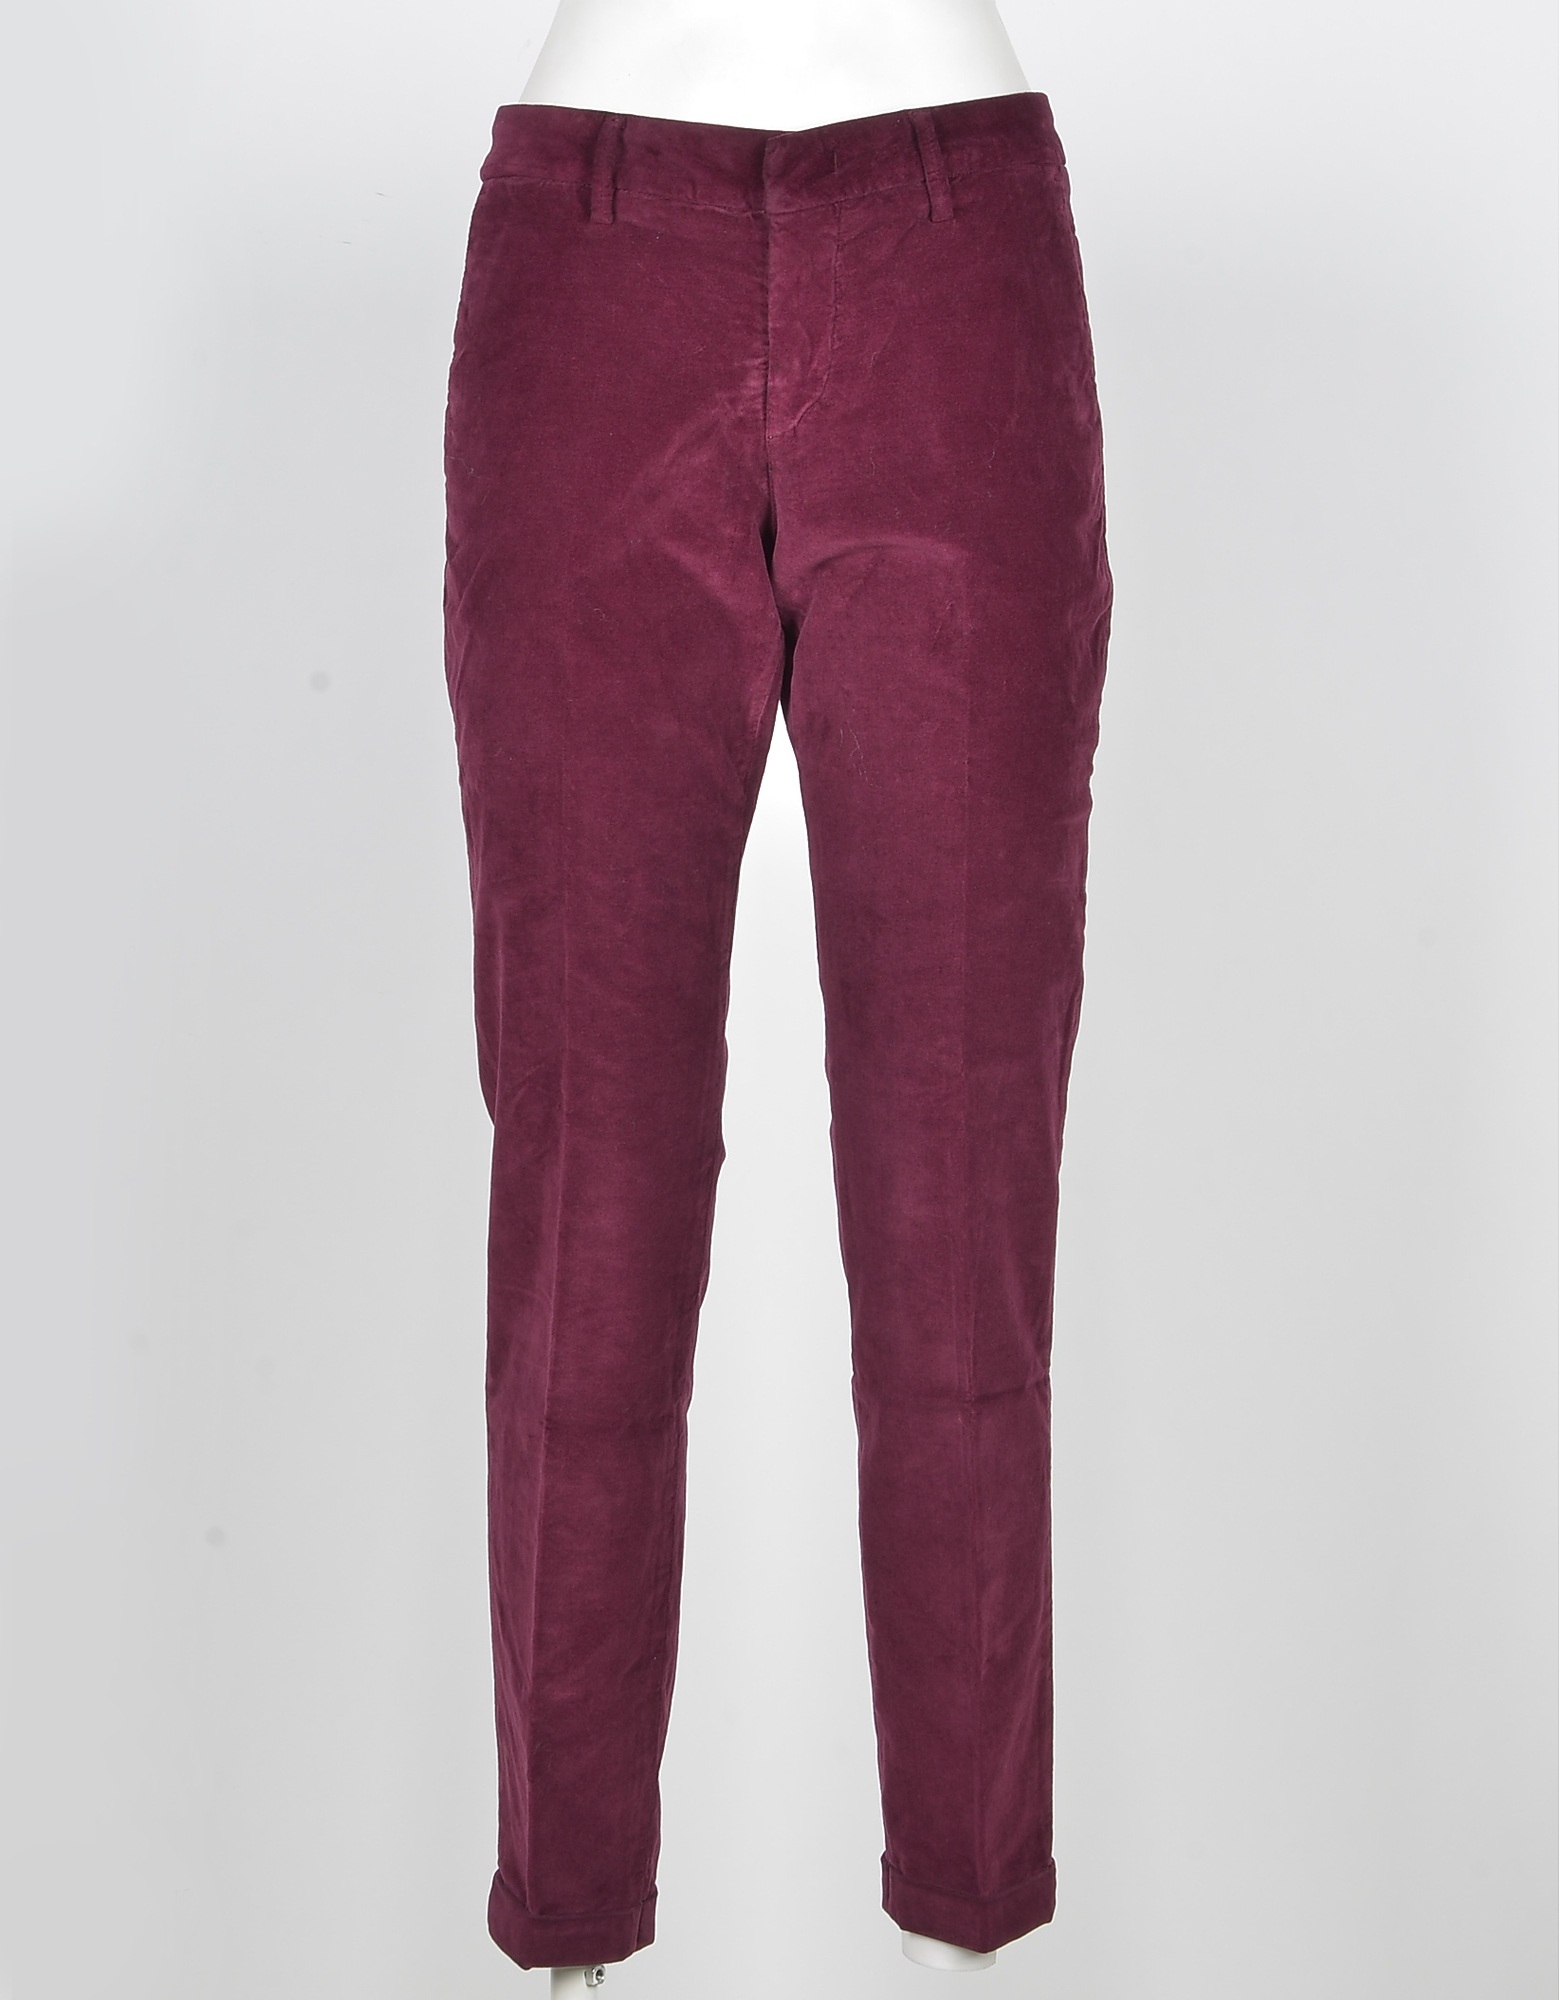 Fay Designer Pants, Women's Bordeaux Pants